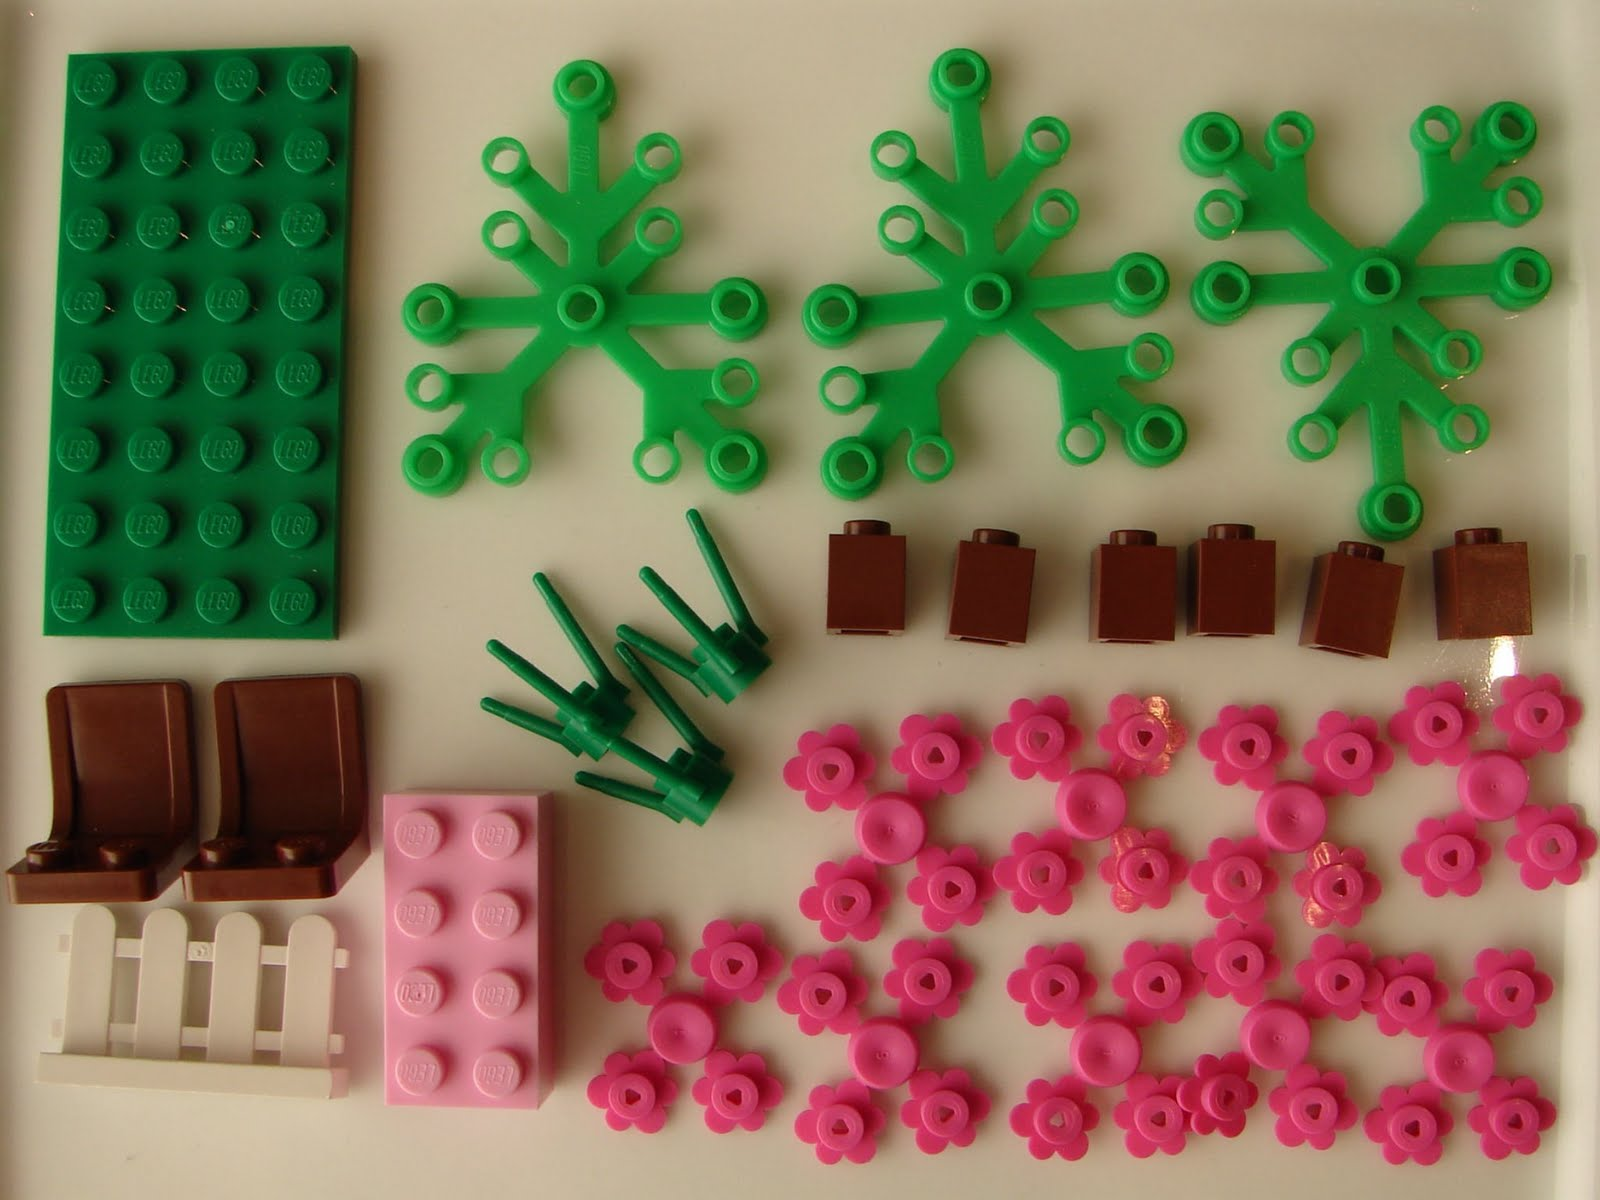 Brick Trick 2011 Pink Cherry Blossom Tree Garden Bench Building